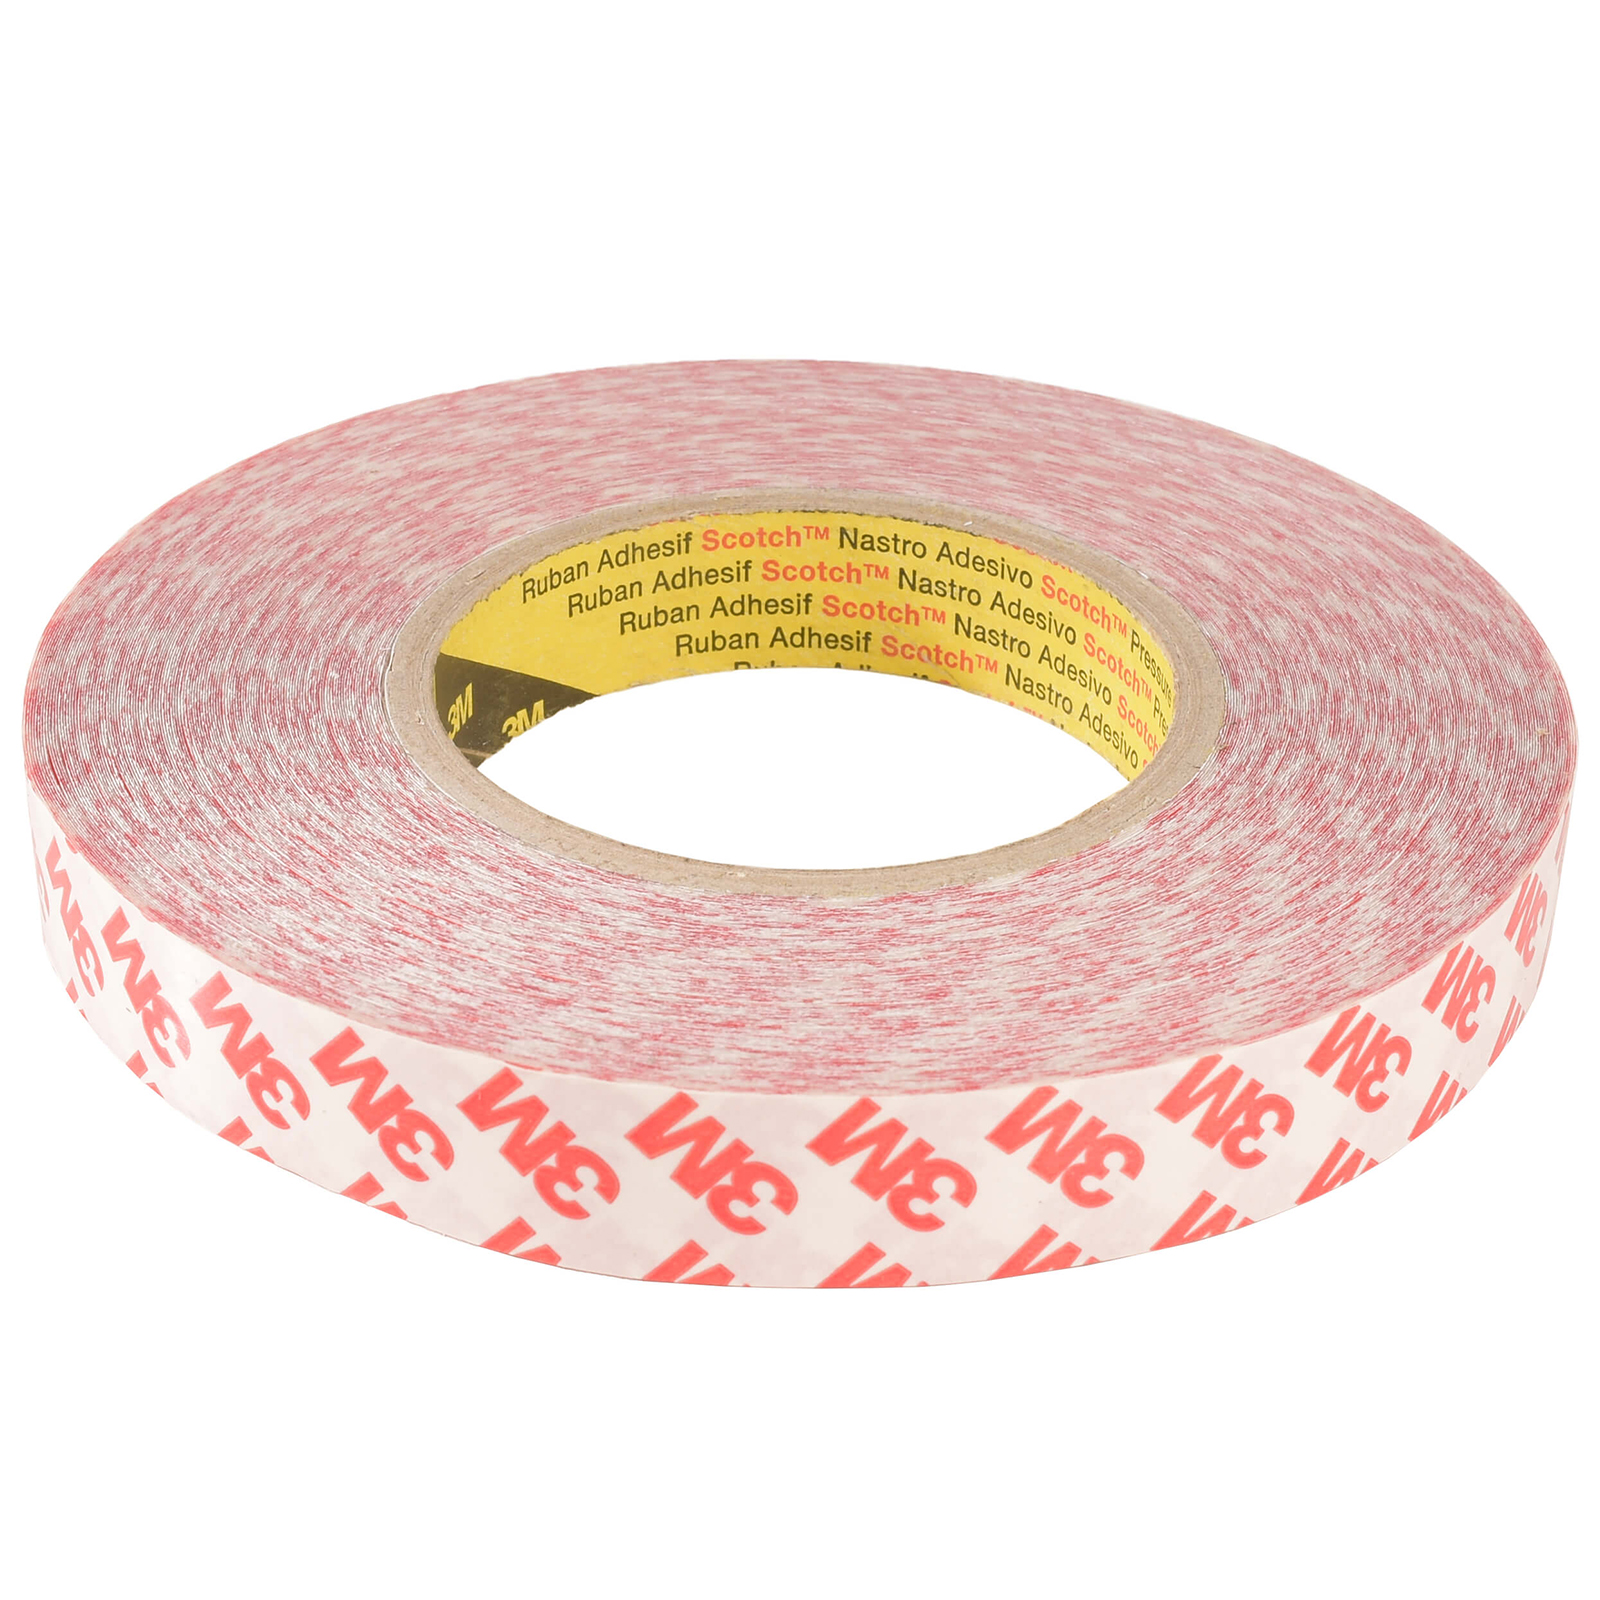 Spool 50 metres of double-sided adhesive 3M double-sided adhesive LED strips profiles resistant 20mm